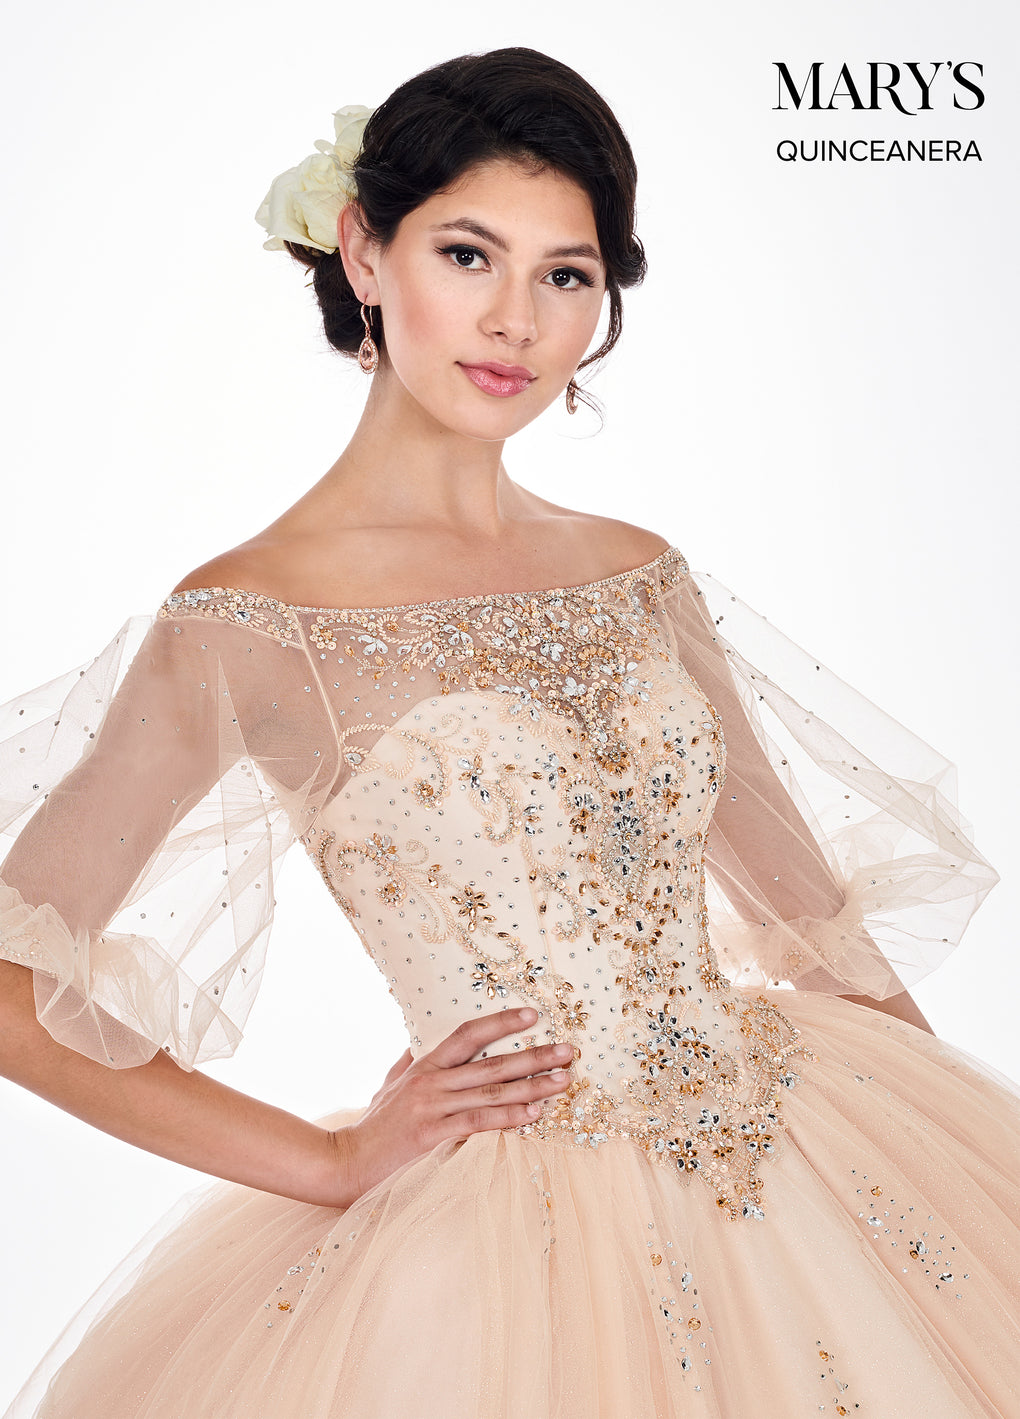 Marys Quinceanera Dresses in Dark Champagne, Soft Turquoise Color